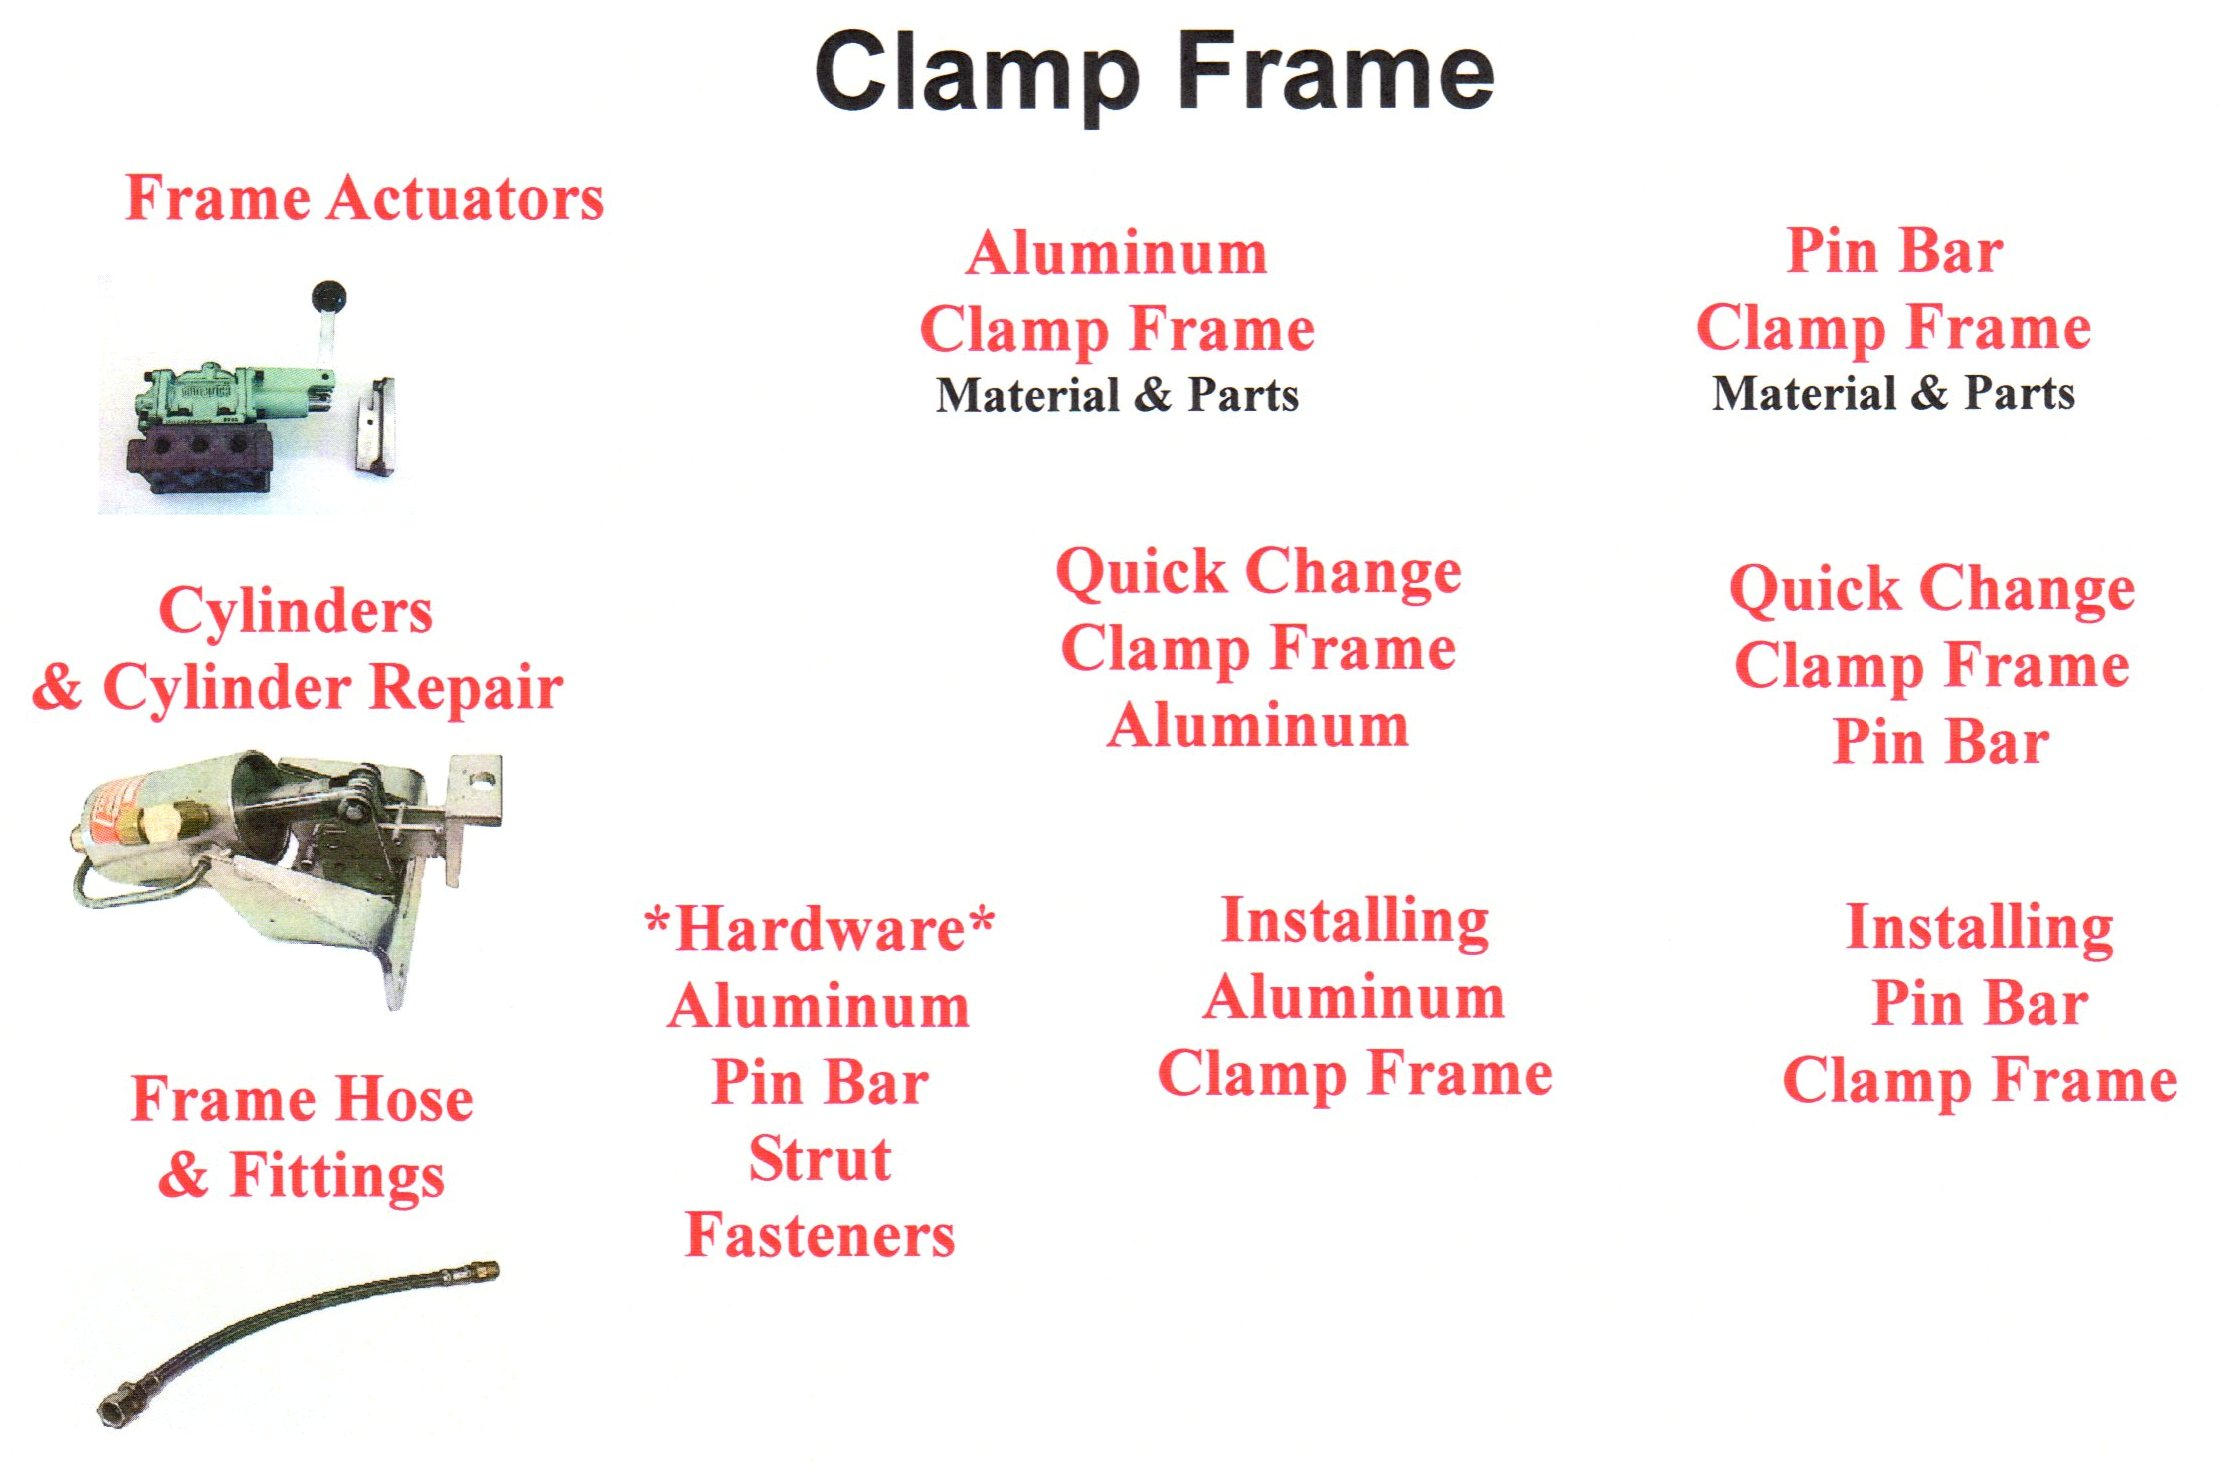 Clamp Frames